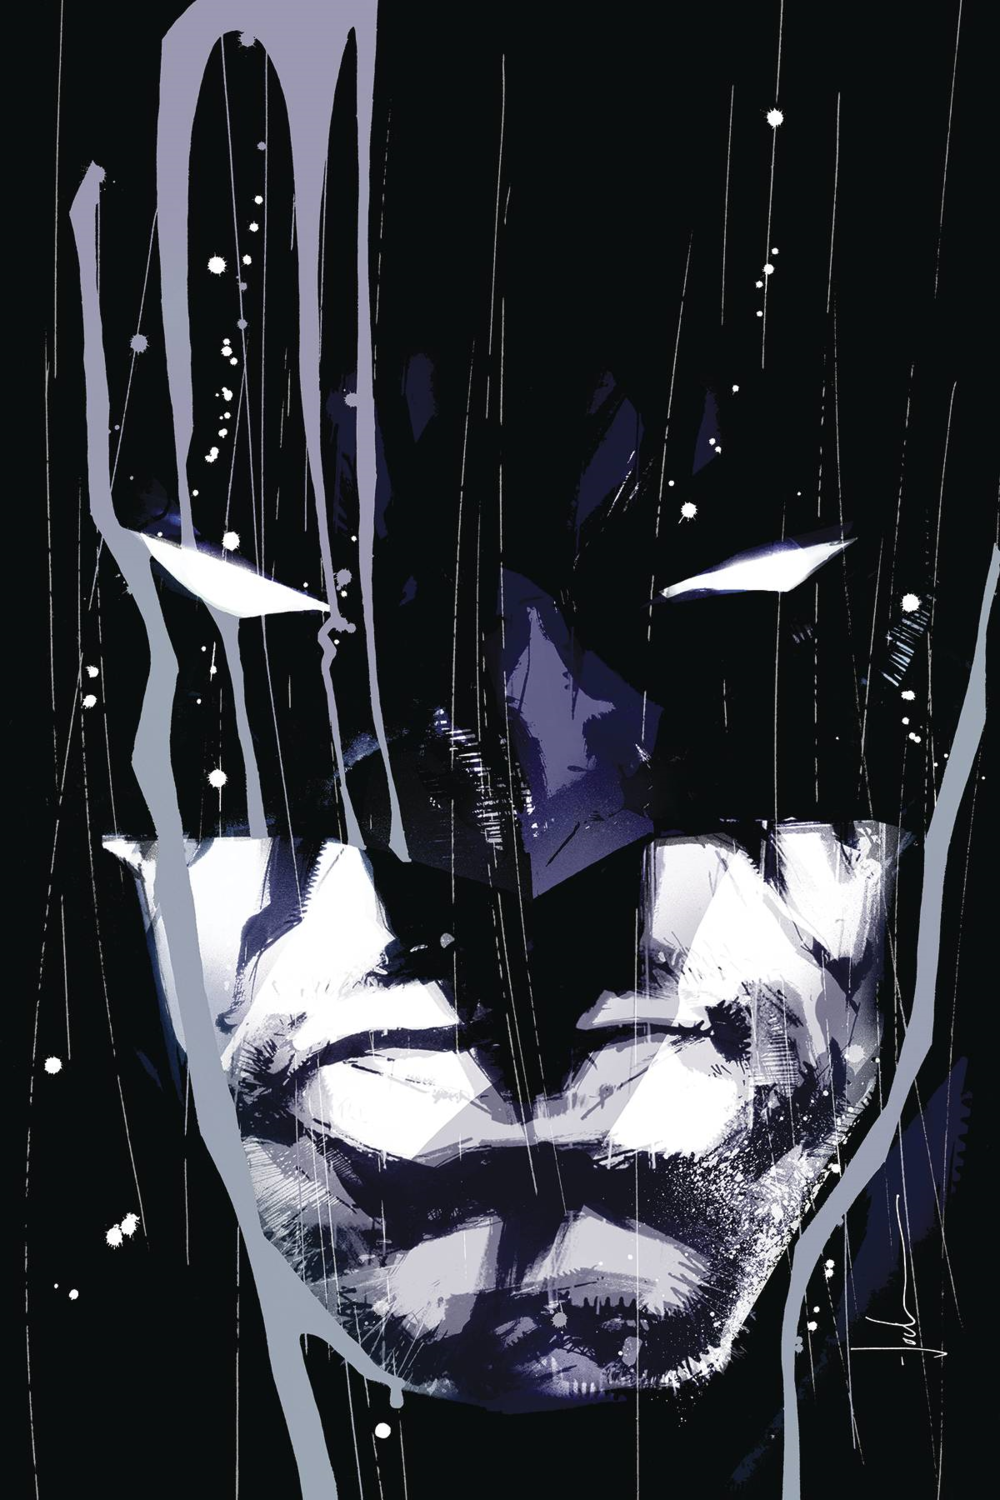 2000s variant by Jock